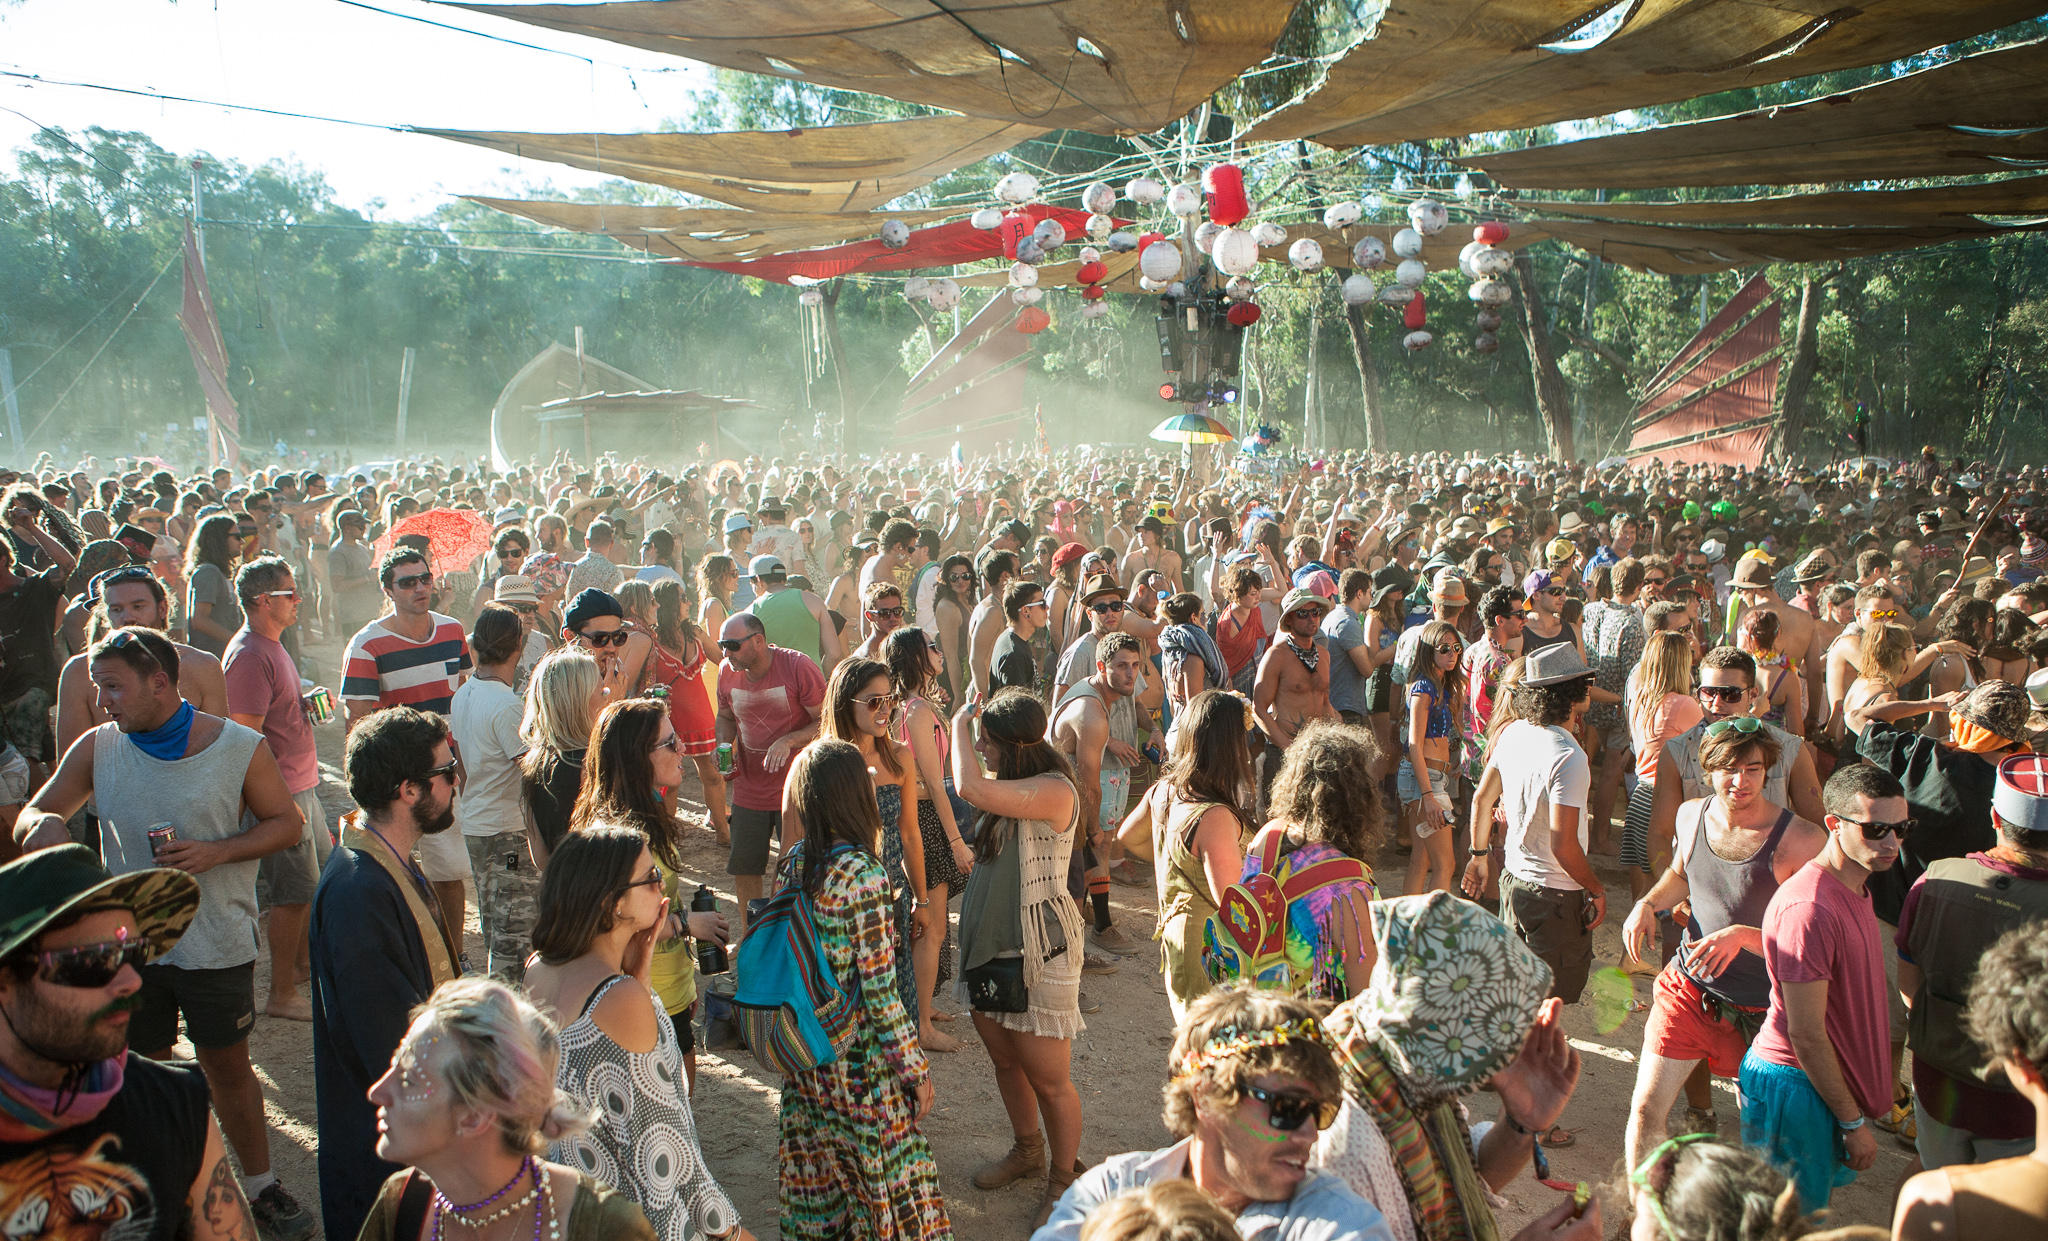 File:Rainbow Serpent Festival.jpg  Wikimedia Commons